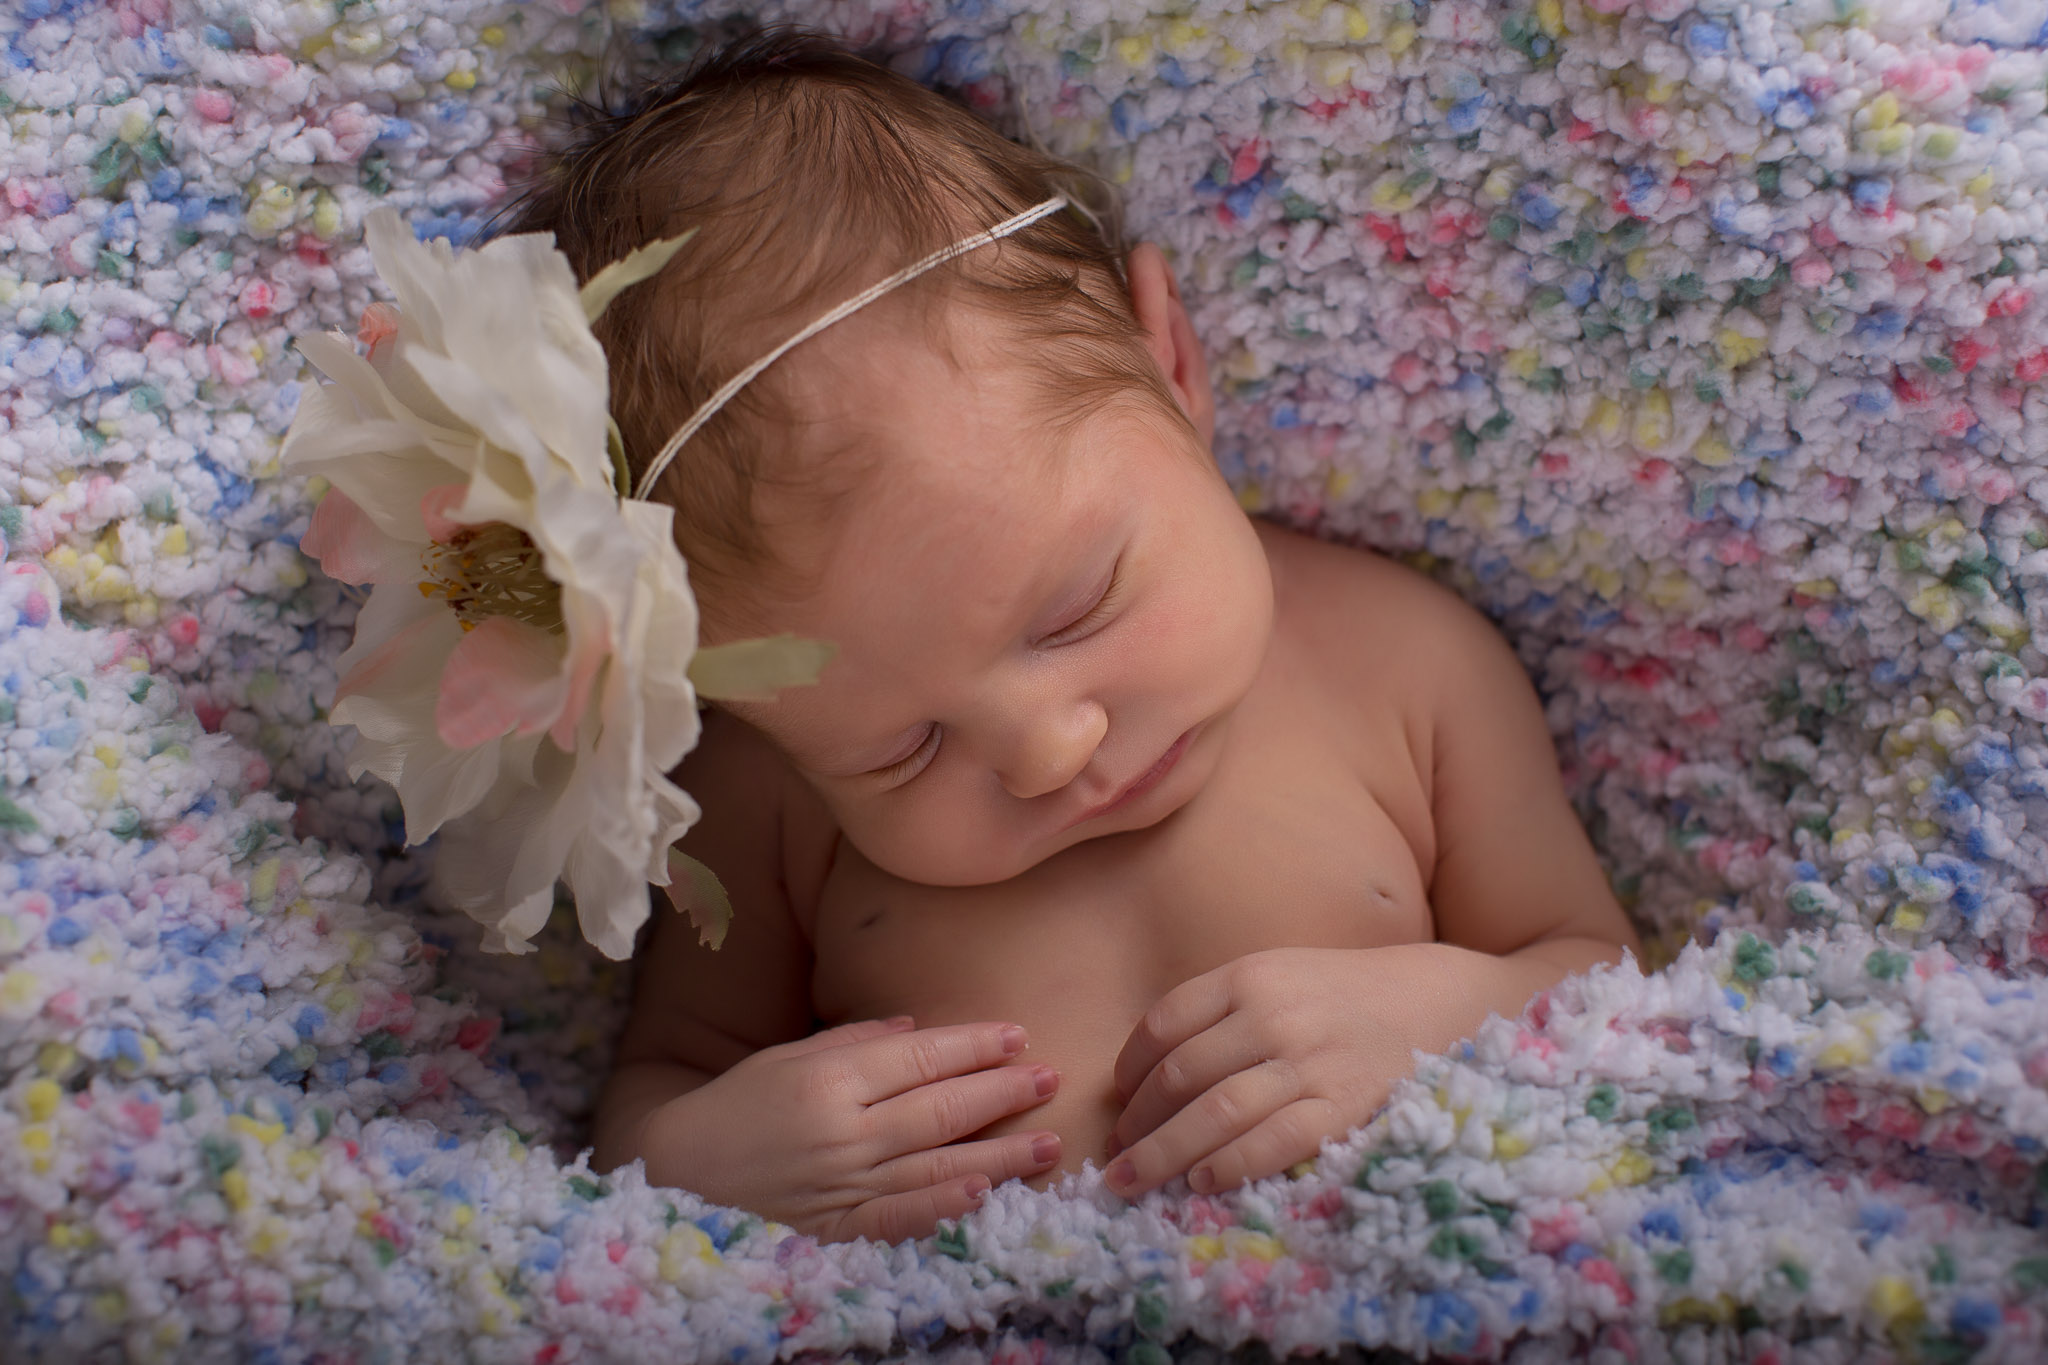 Image of newborn baby sleeping with big flower headband on her head